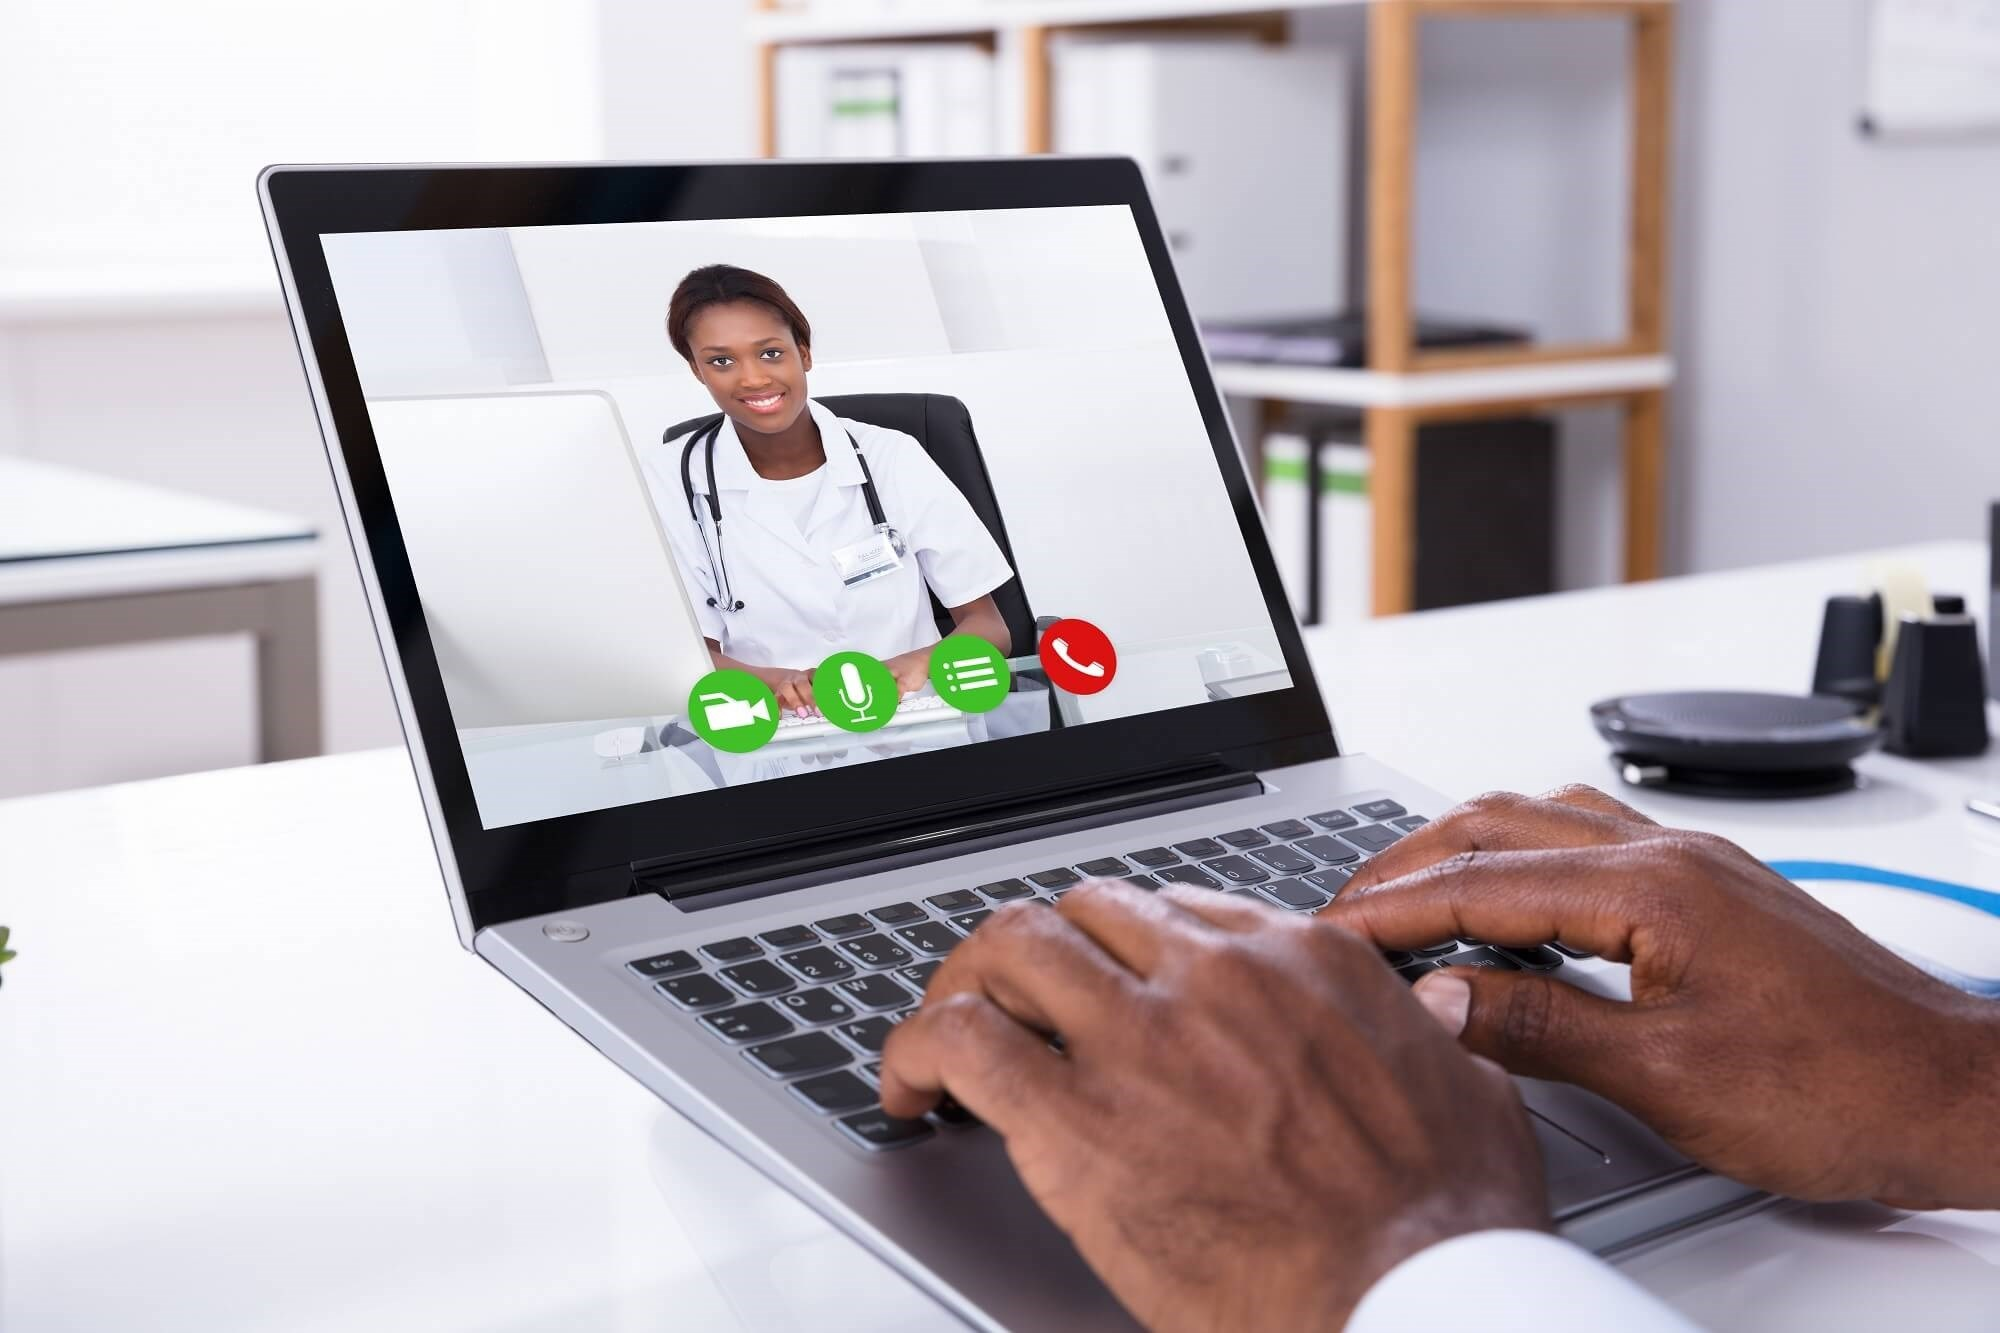 Virtual video visits can effectively replace office visits for selected patients across medical specialties without sacrificing quality of care or patient-physician communication.